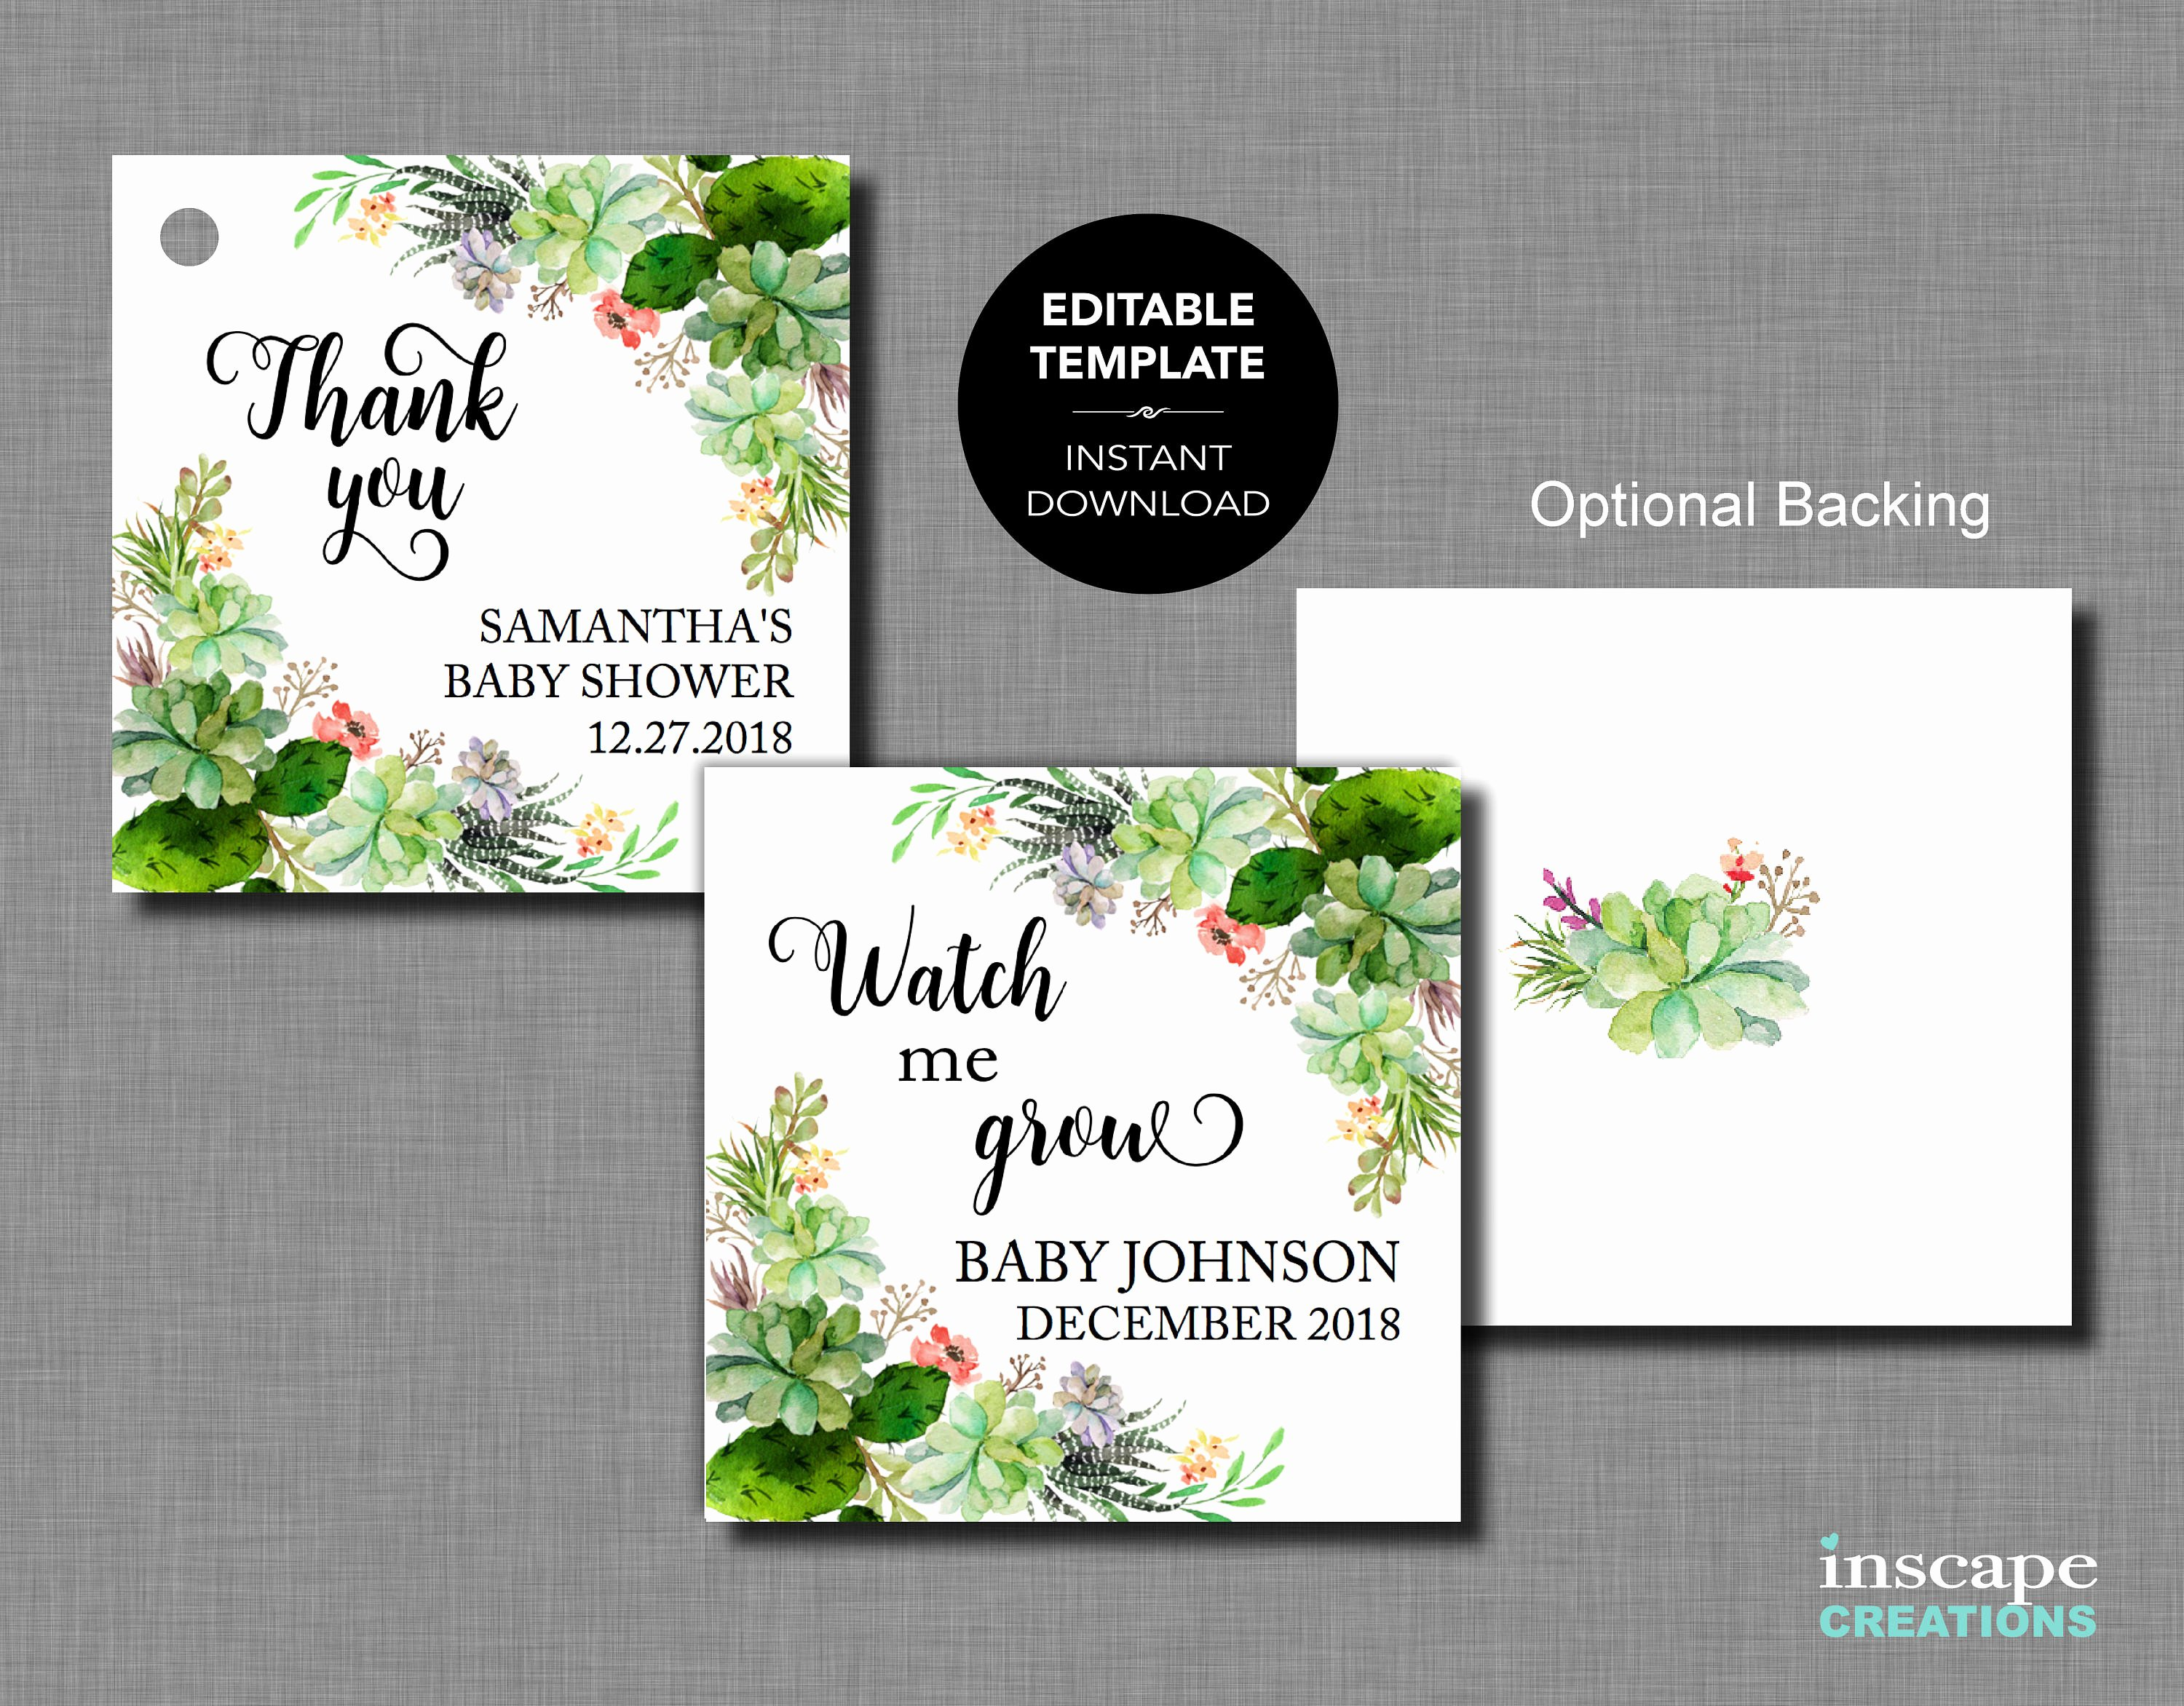 Baby Shower Tags Template Beautiful Succulents Editable Baby Shower Favor Tags Template Watch Me